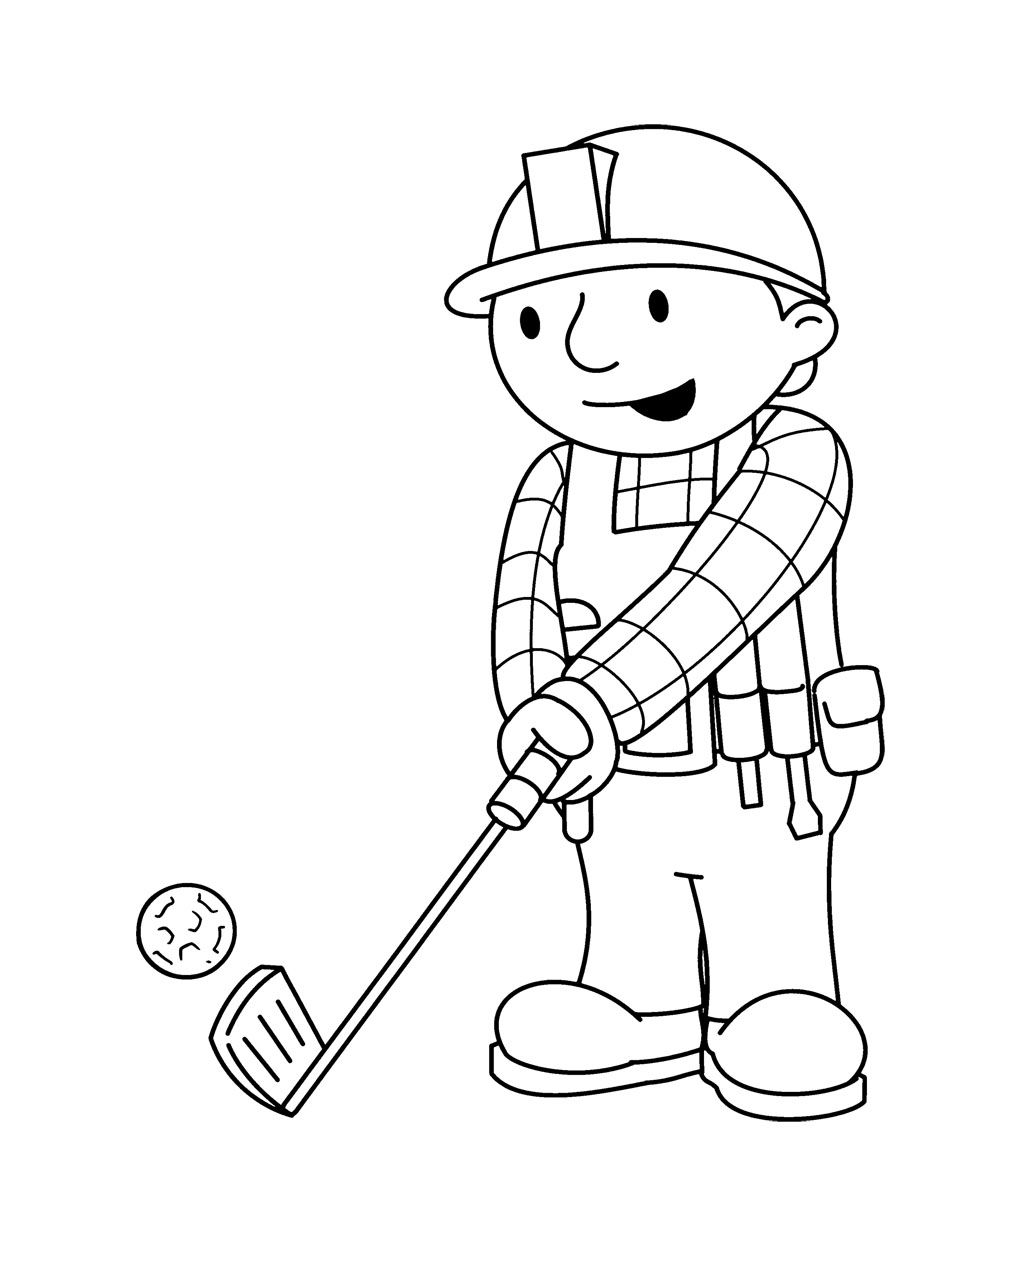 bob the builder palying golf coloring page for kids kids